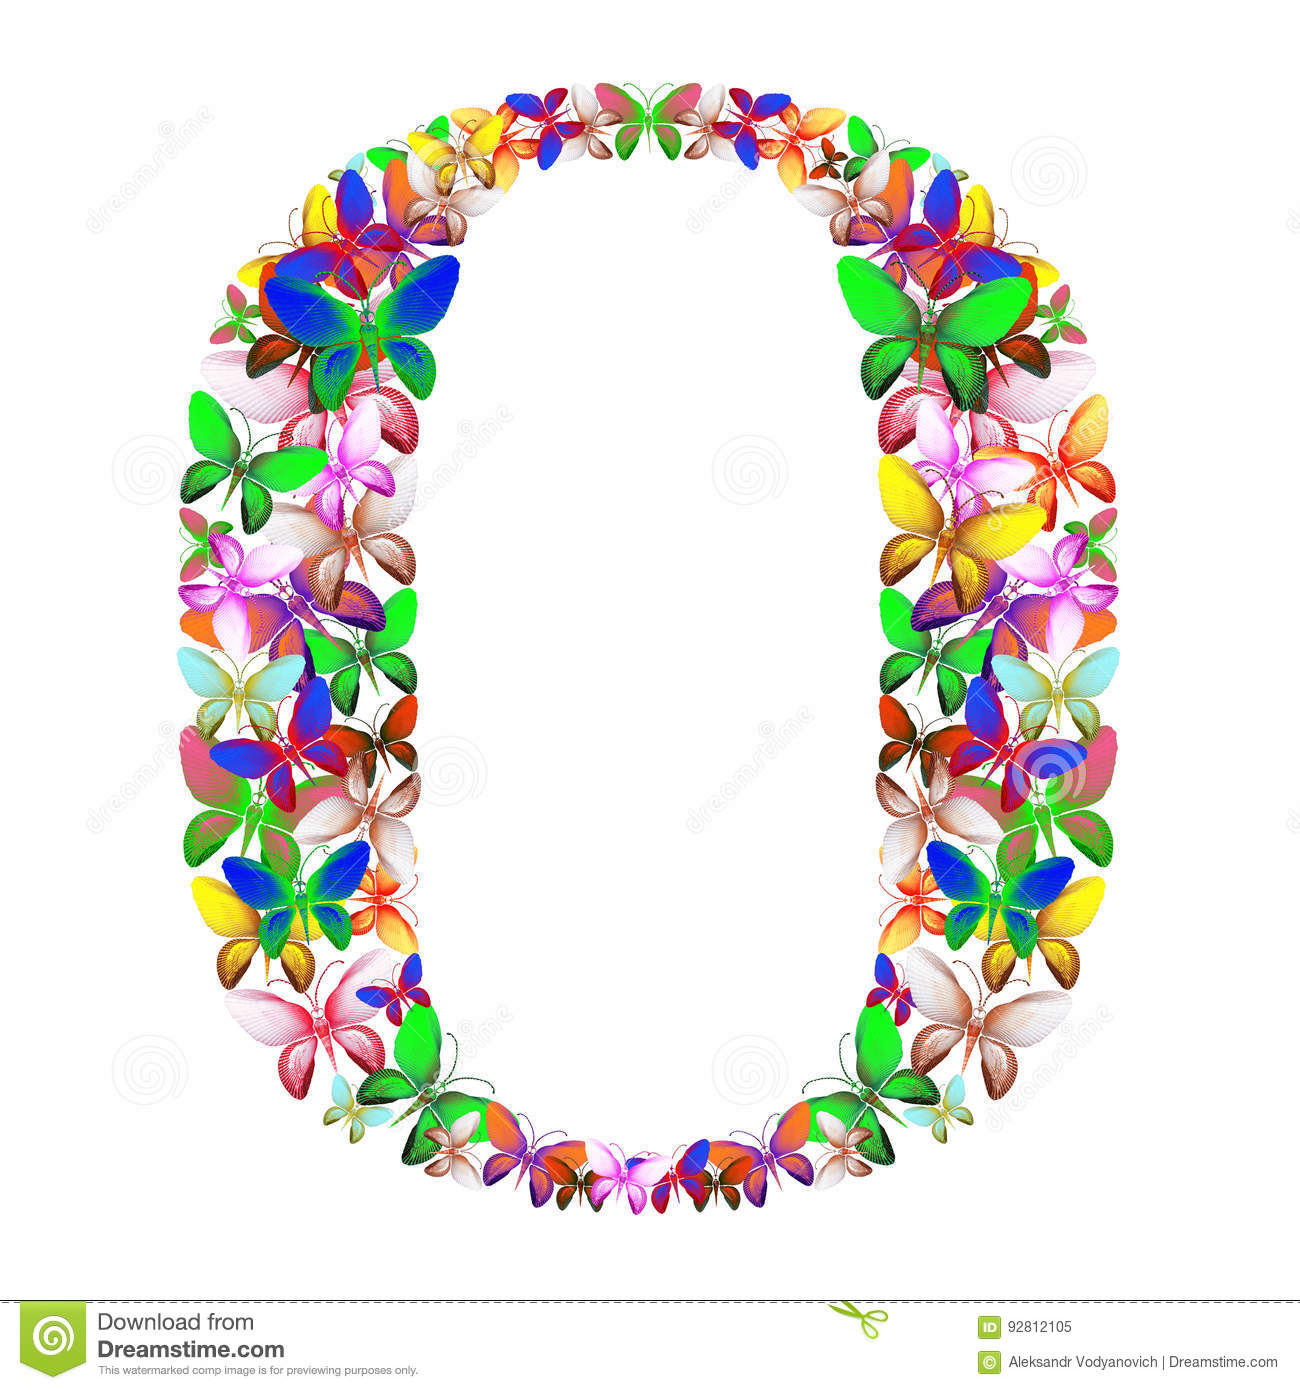 The Letter O Made Up Of Lots Of Butterflies Of Different